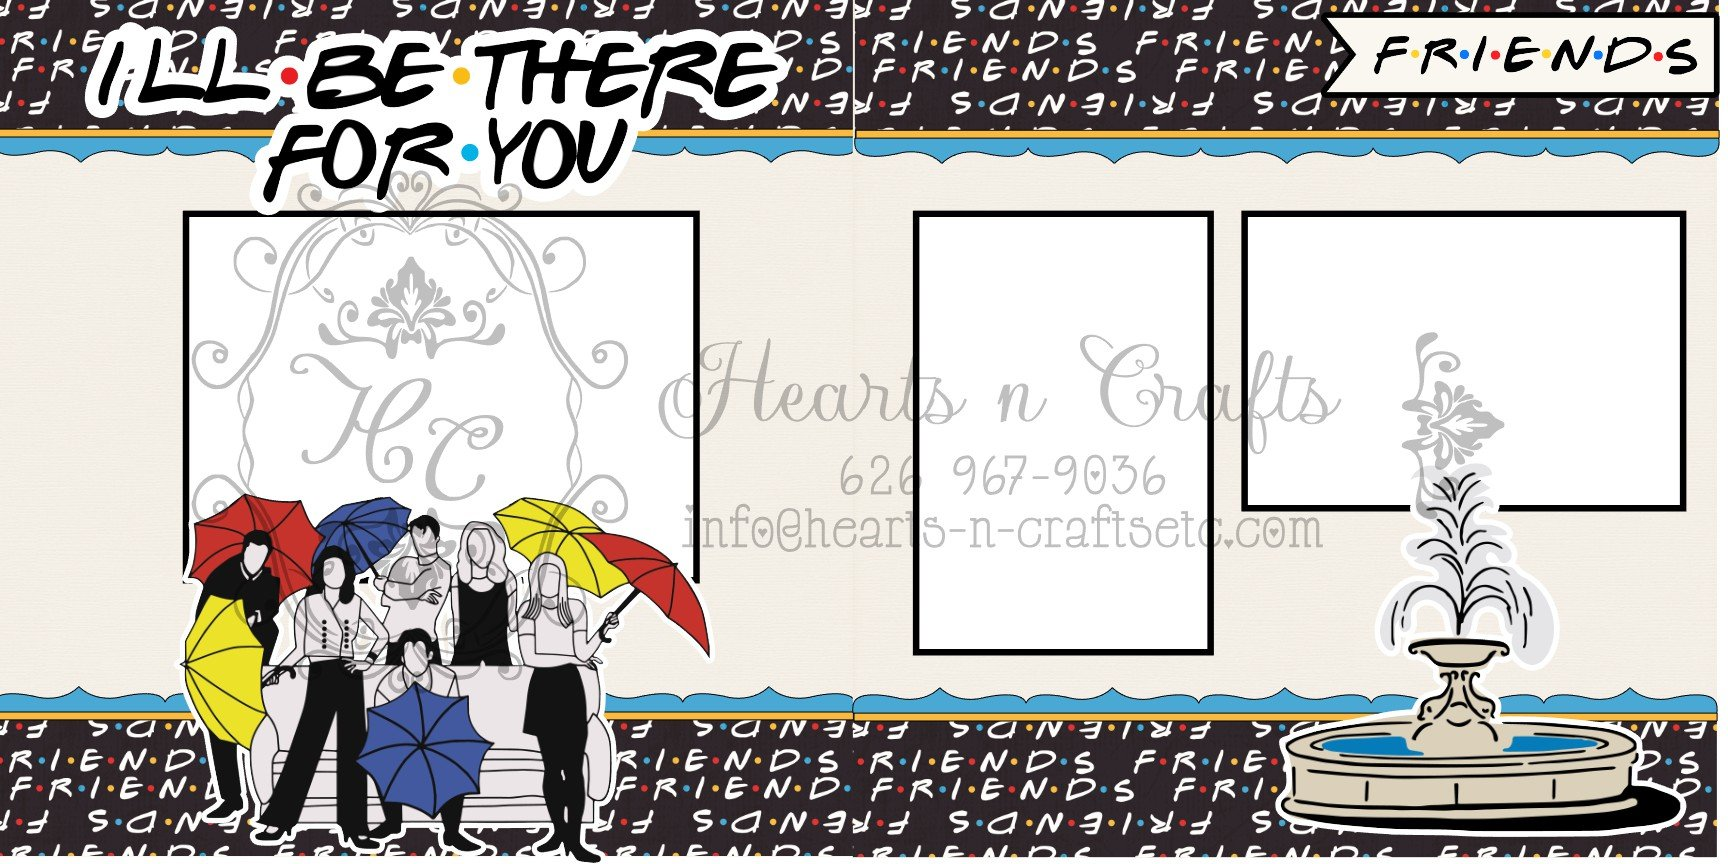 Friends-I'll be there for you 2 pg Layout